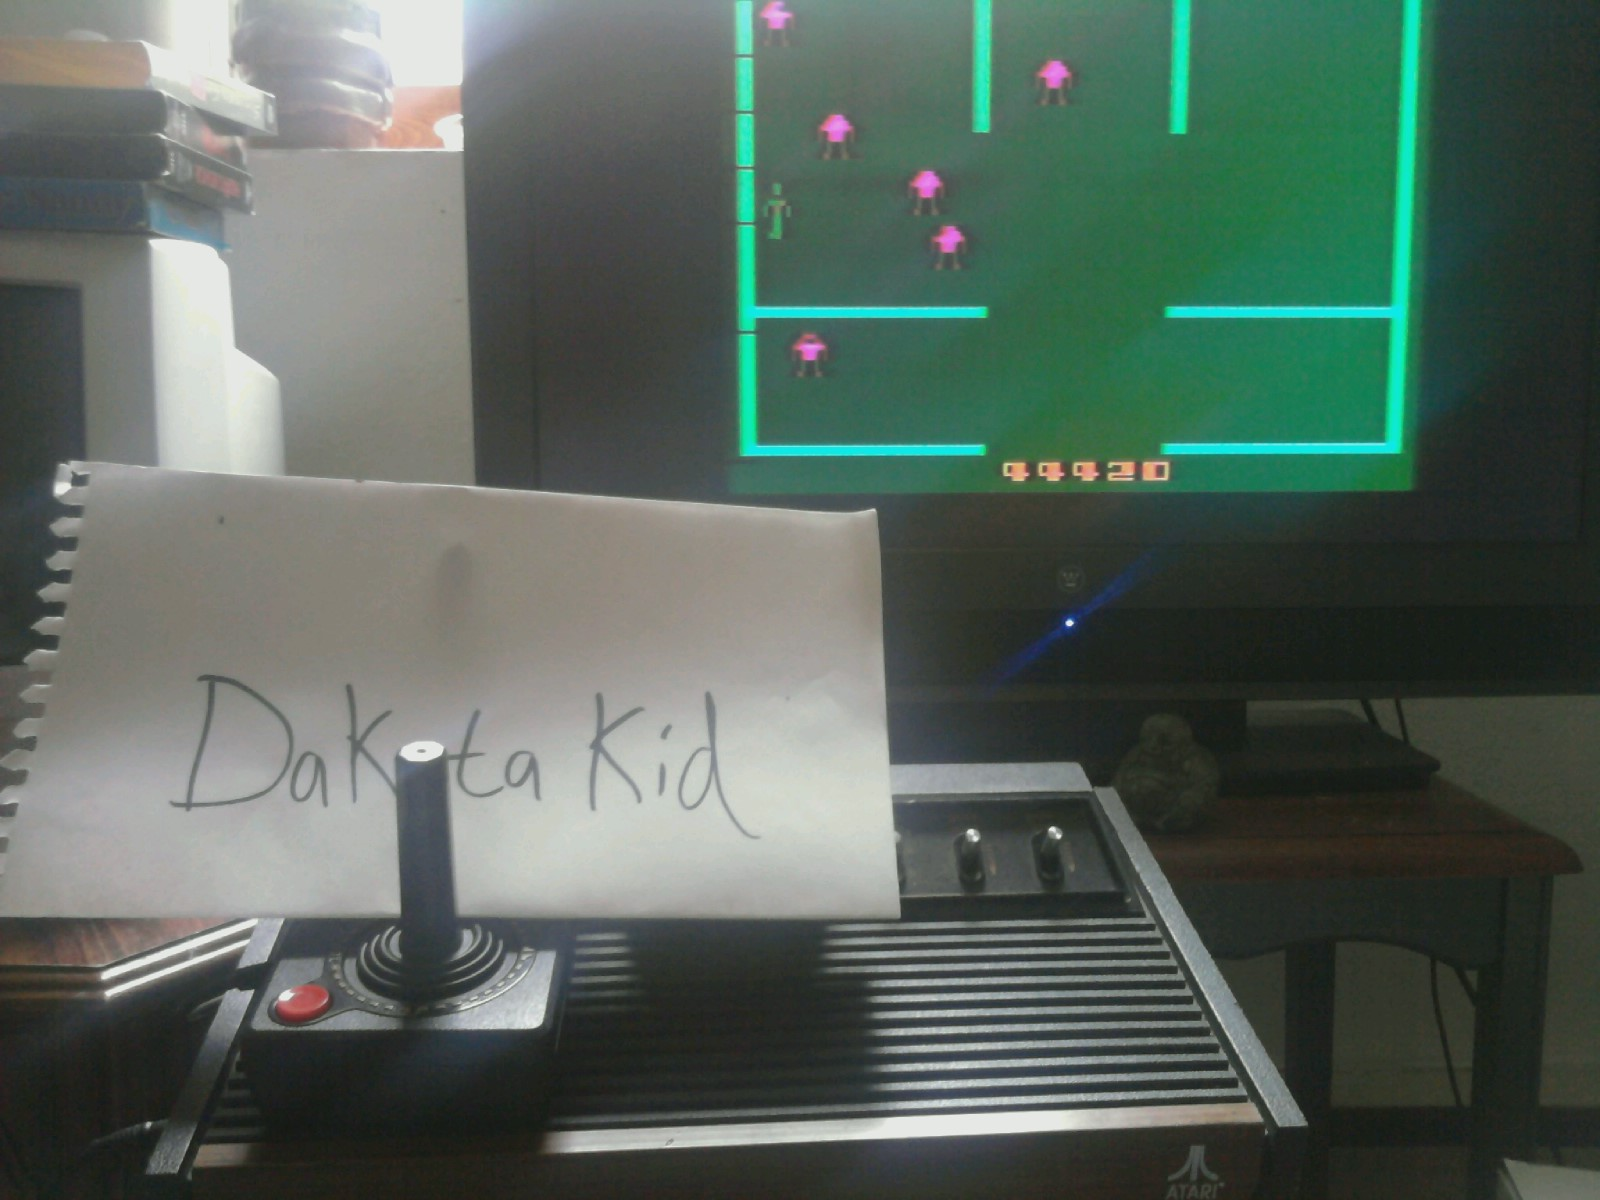 DakotaKid: Berzerk: Game 1 (Atari 2600) 44,420 points on 2014-04-26 18:14:18